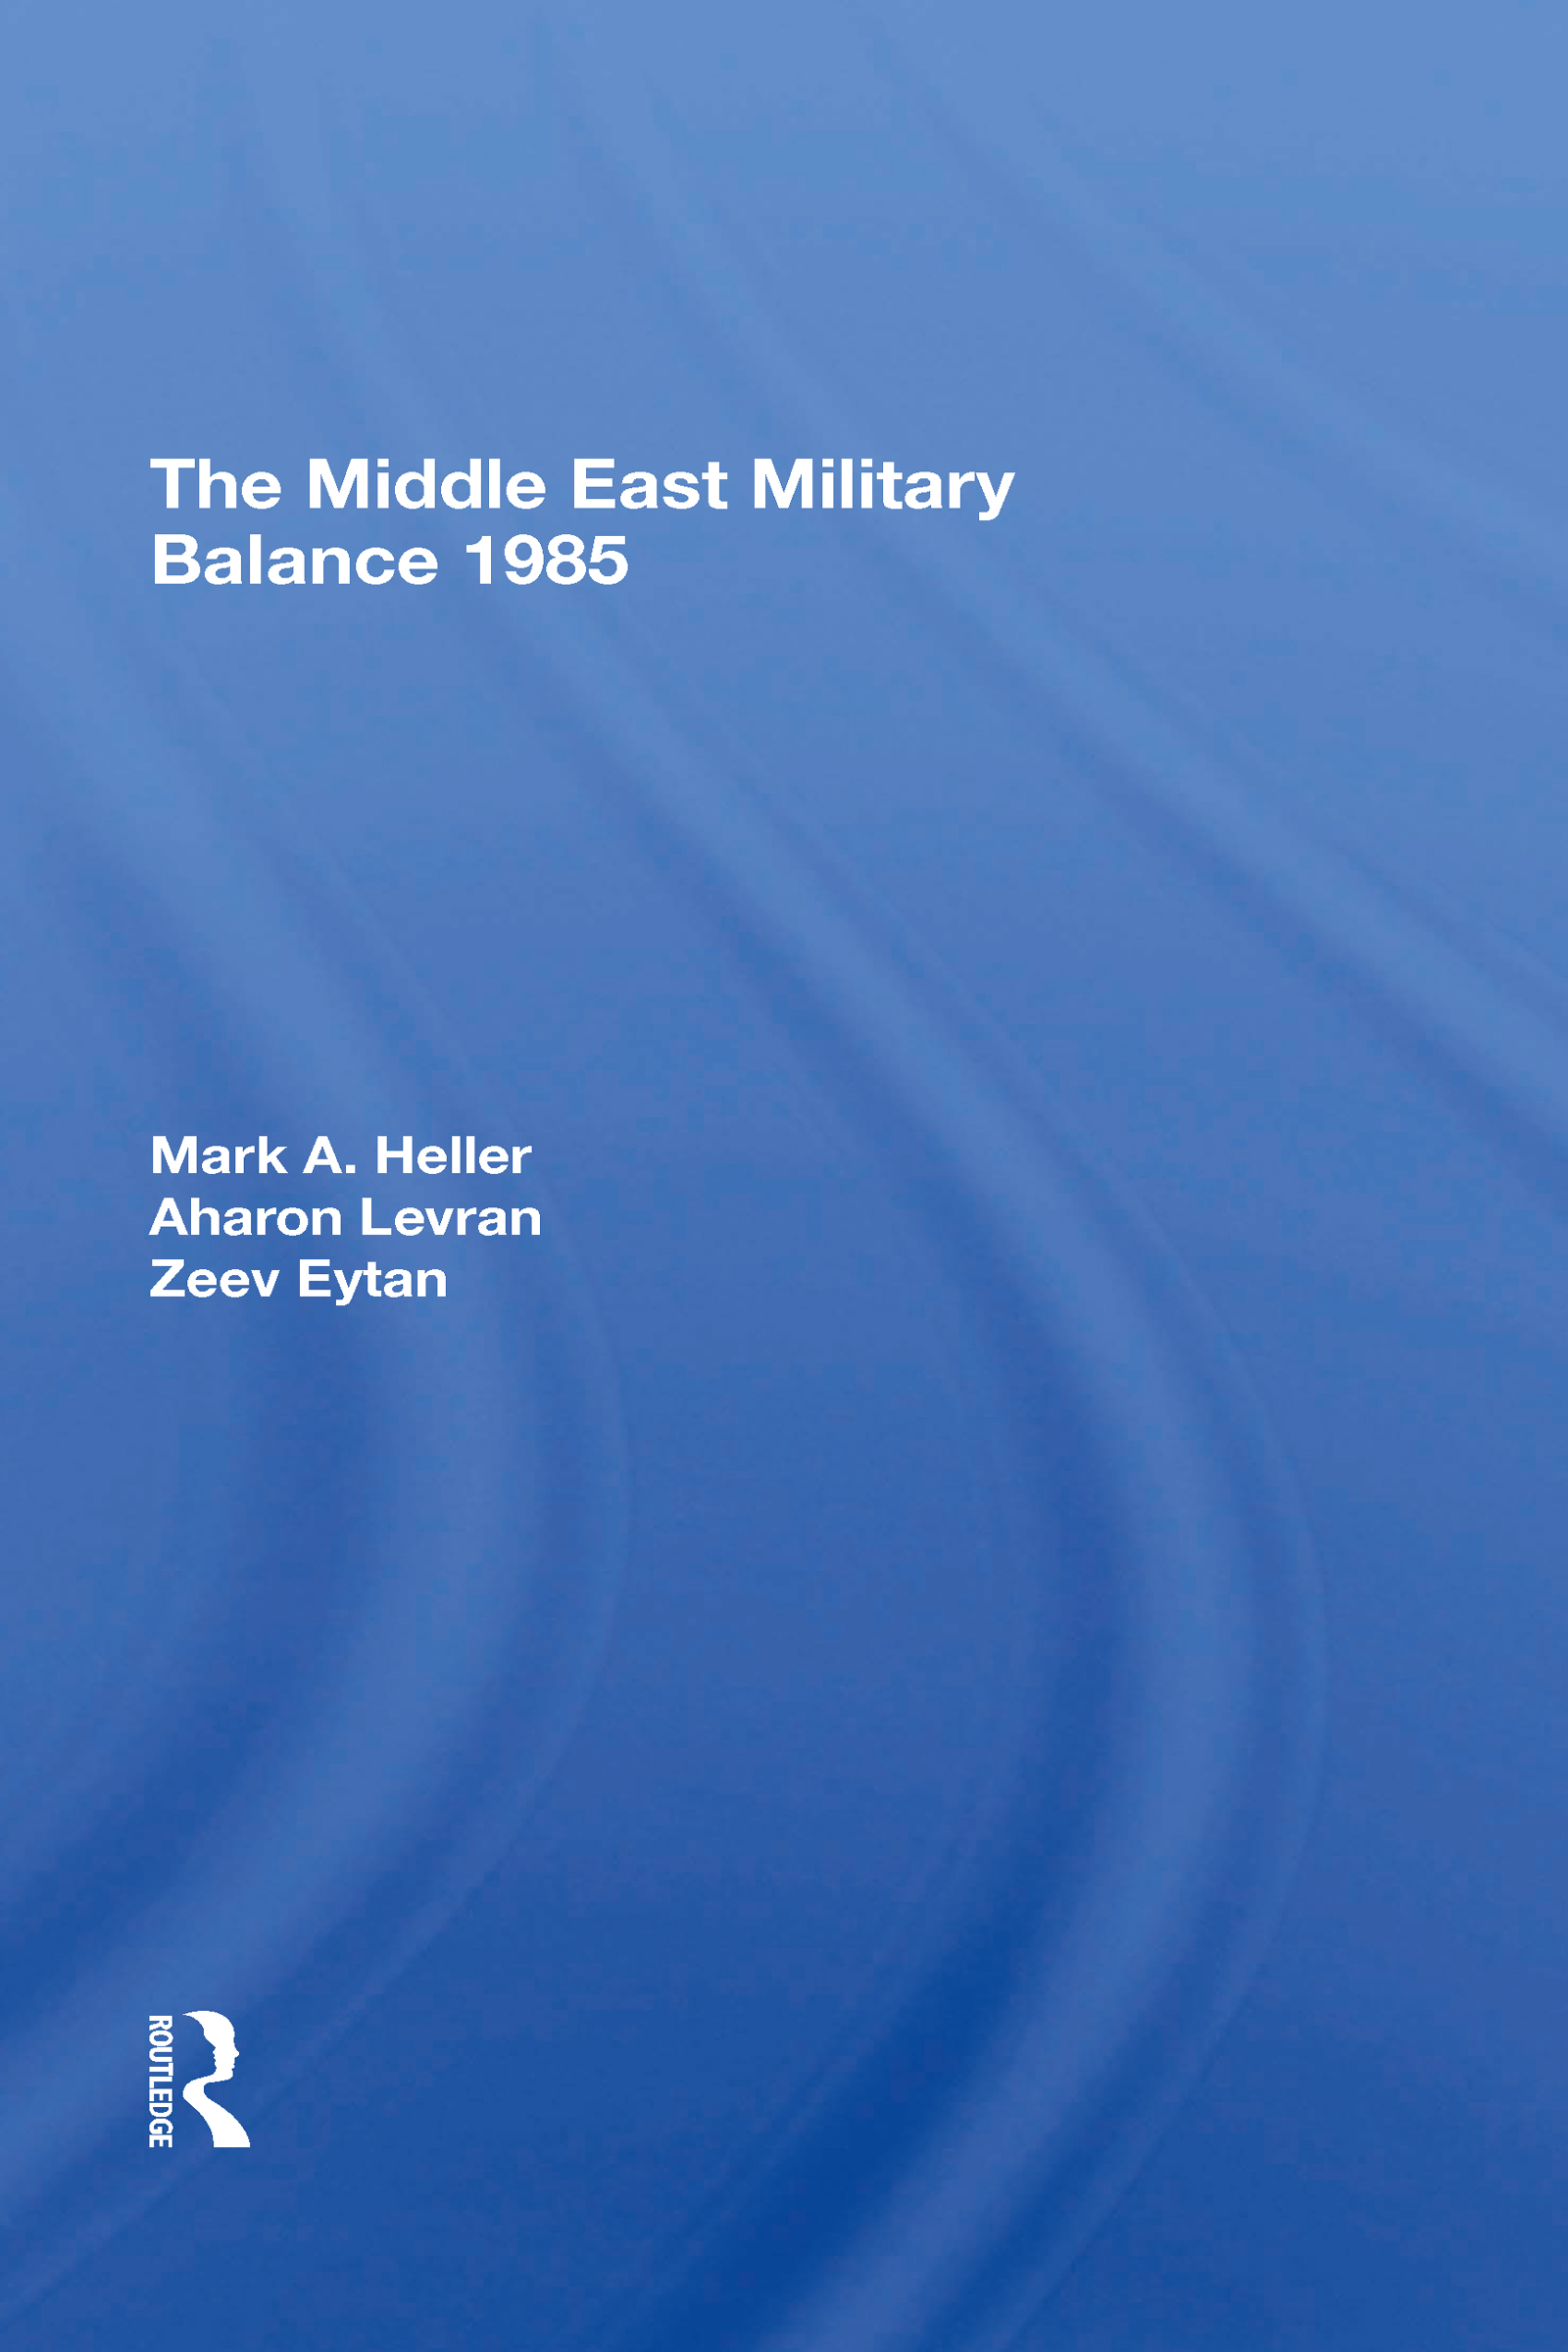 The Middle East Military Balance 1985